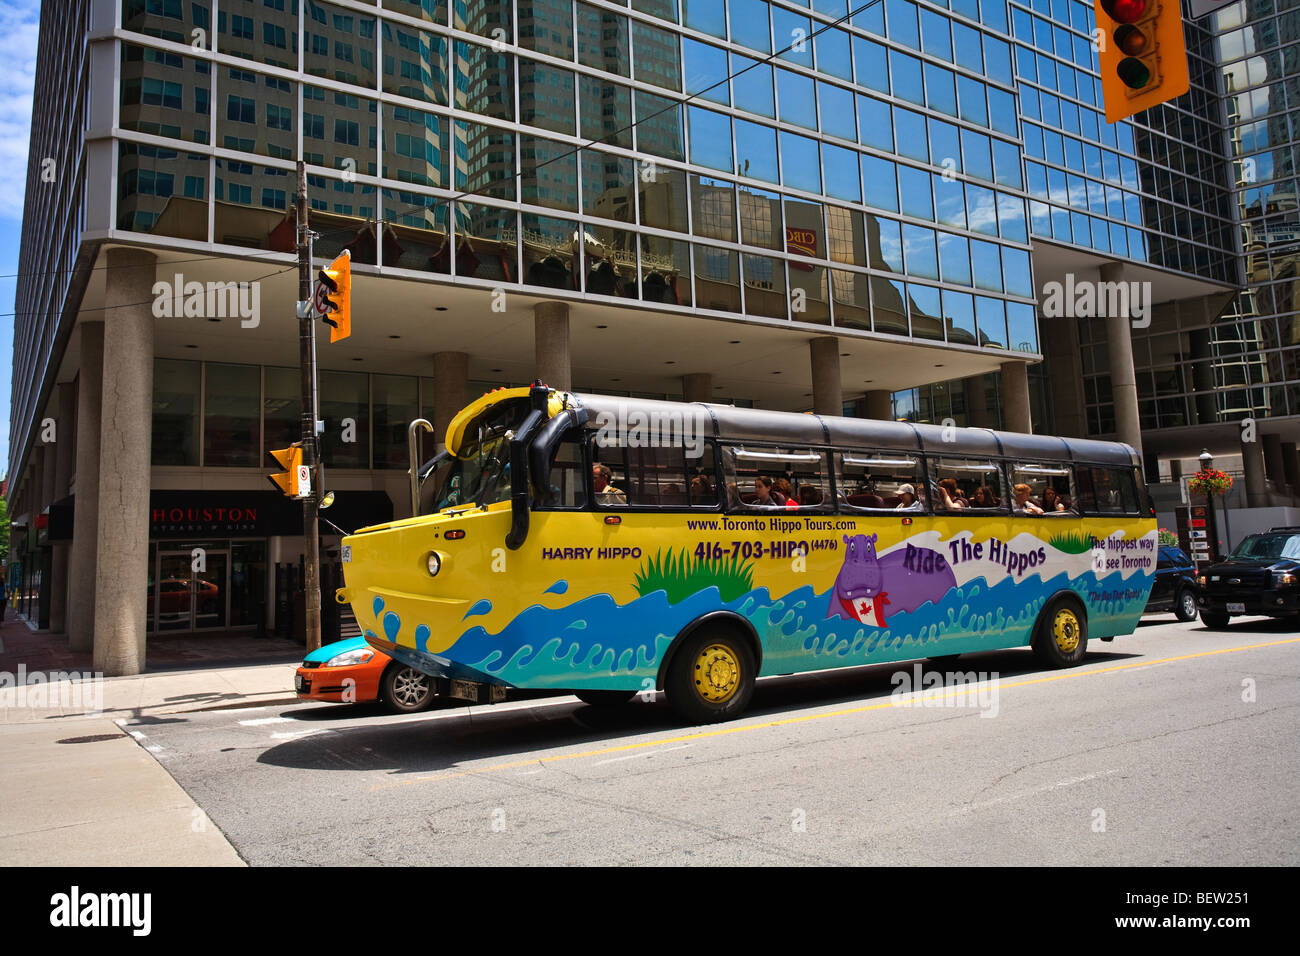 Hippo Bus Tour Toronto